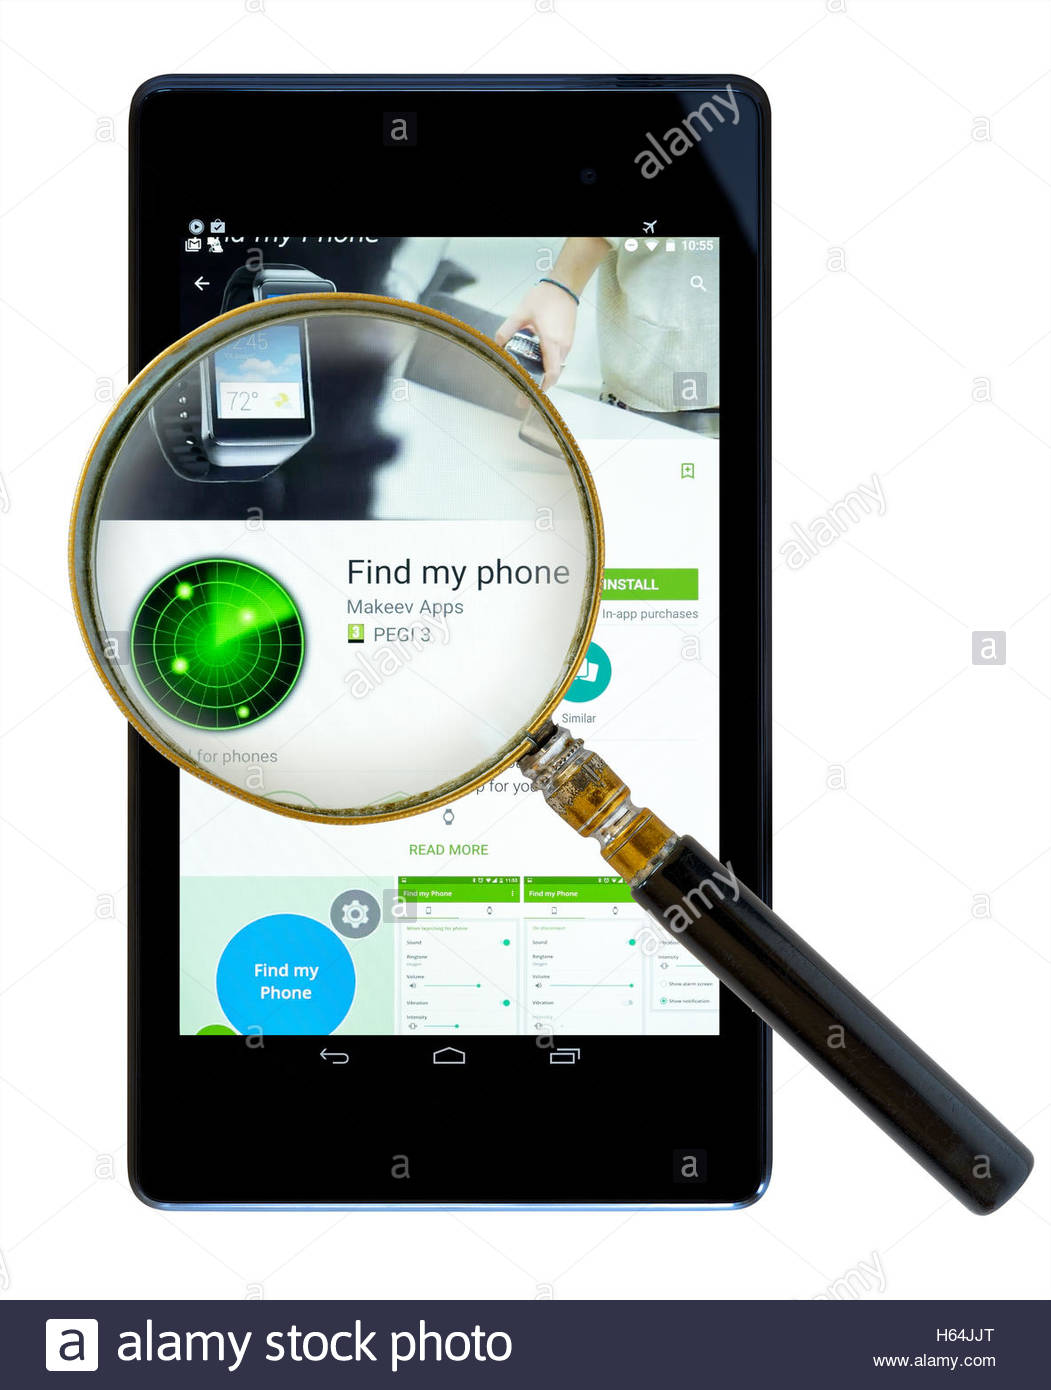 Find My Phone app shown on a tablet computer, Dorset, England, UK - Stock Image